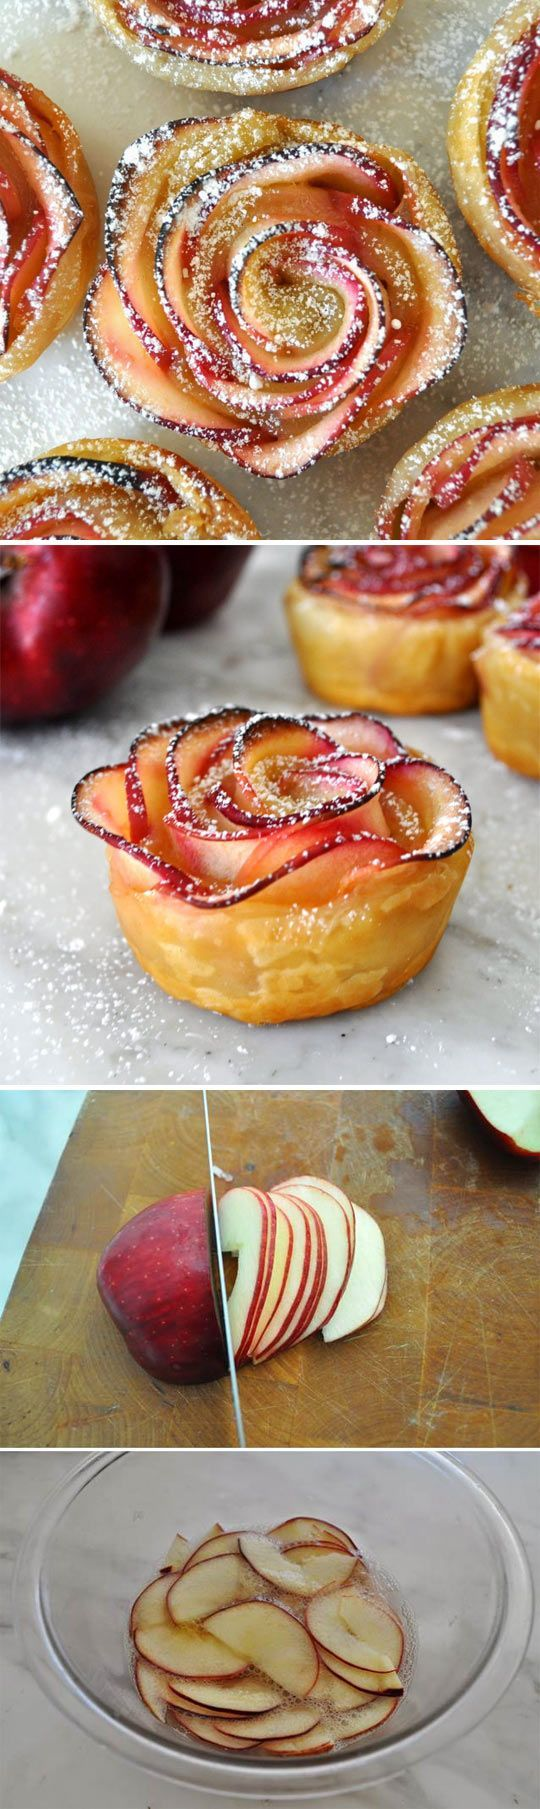 Apple Rose Dessert Pastry